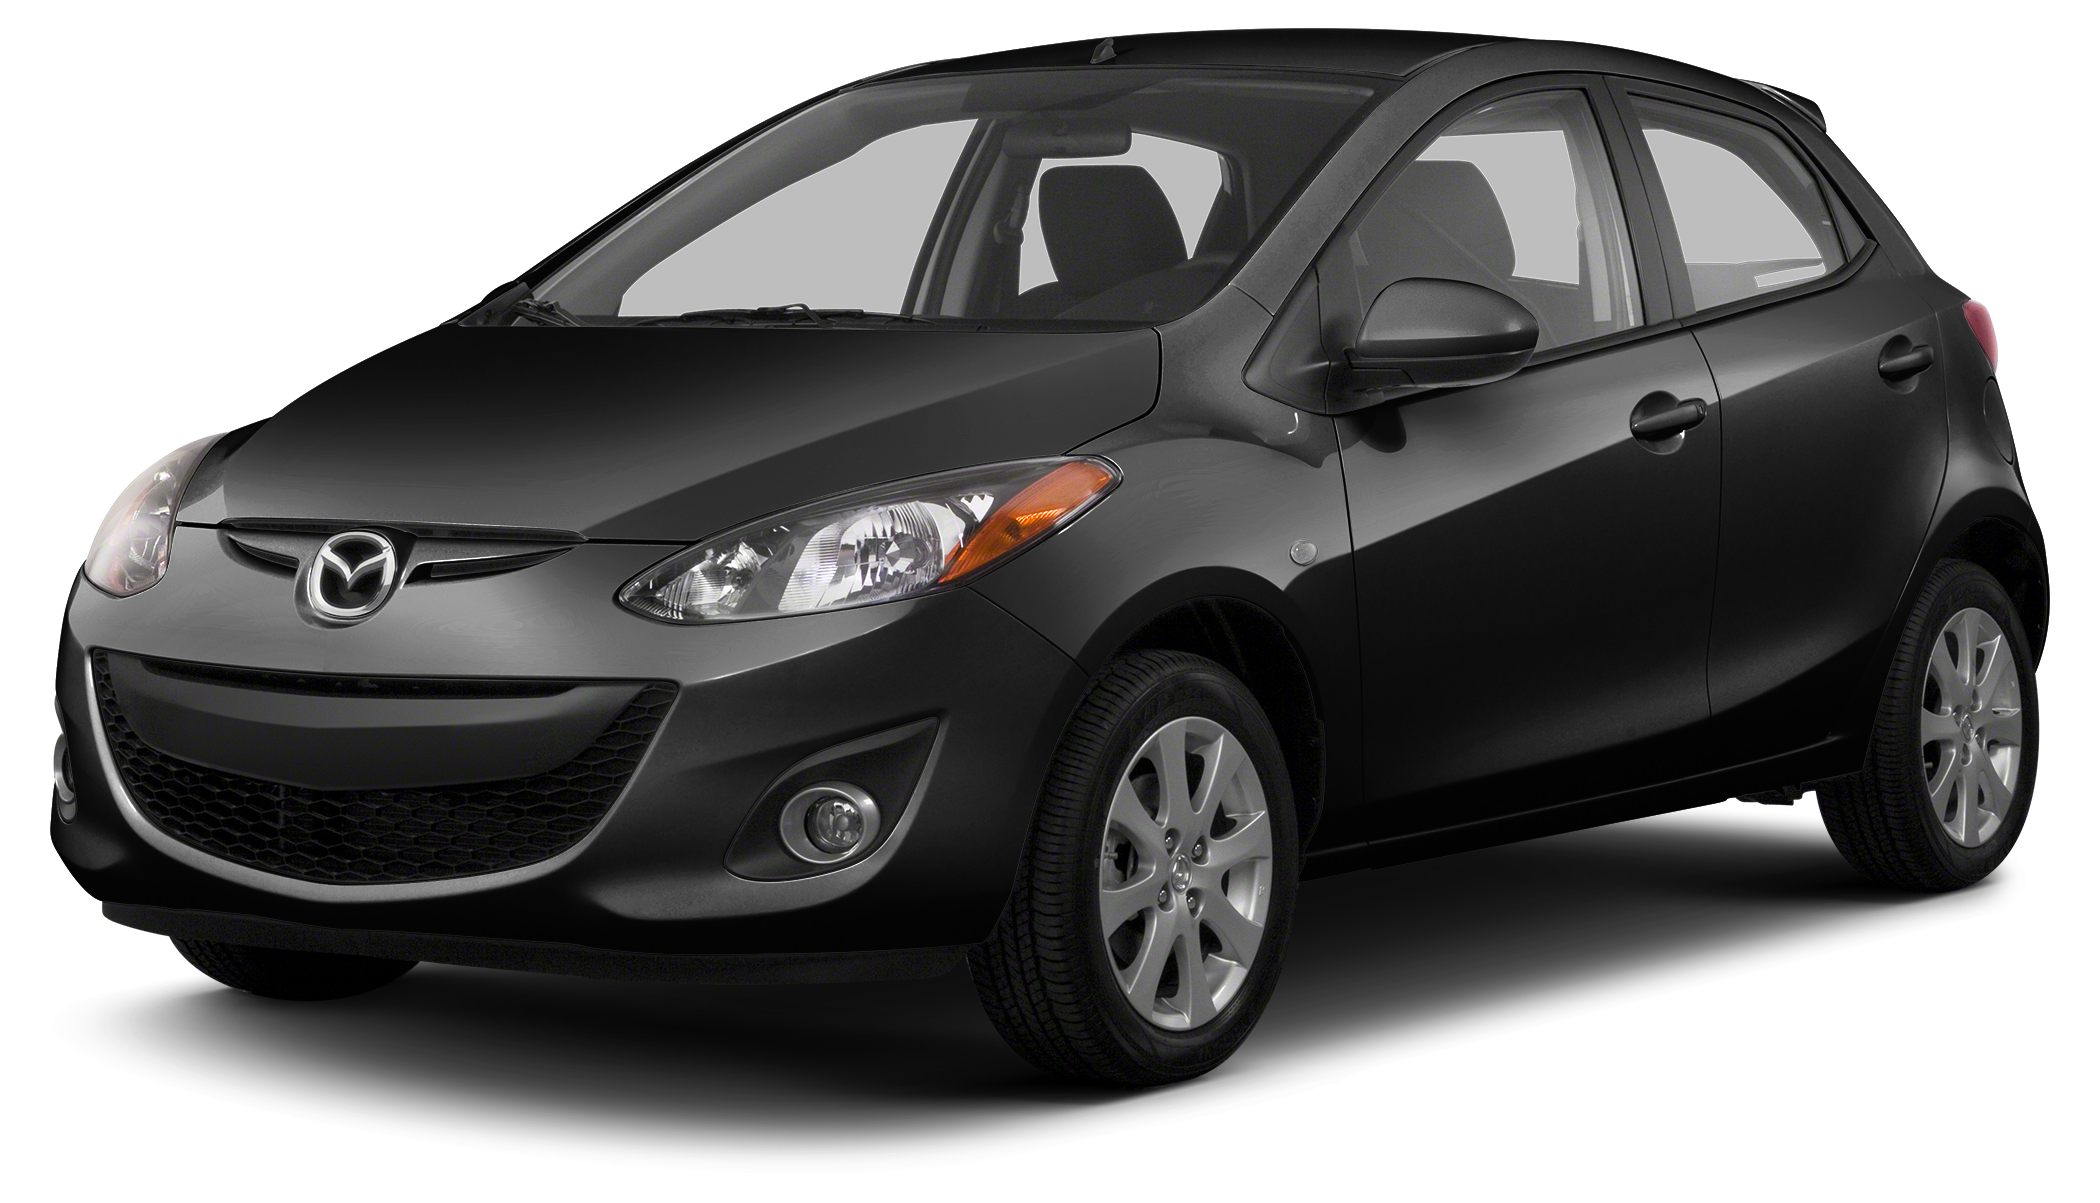 2013 Mazda MAZDA2 Sport OUR PRICESYoure probably wondering why our prices are so much lower than